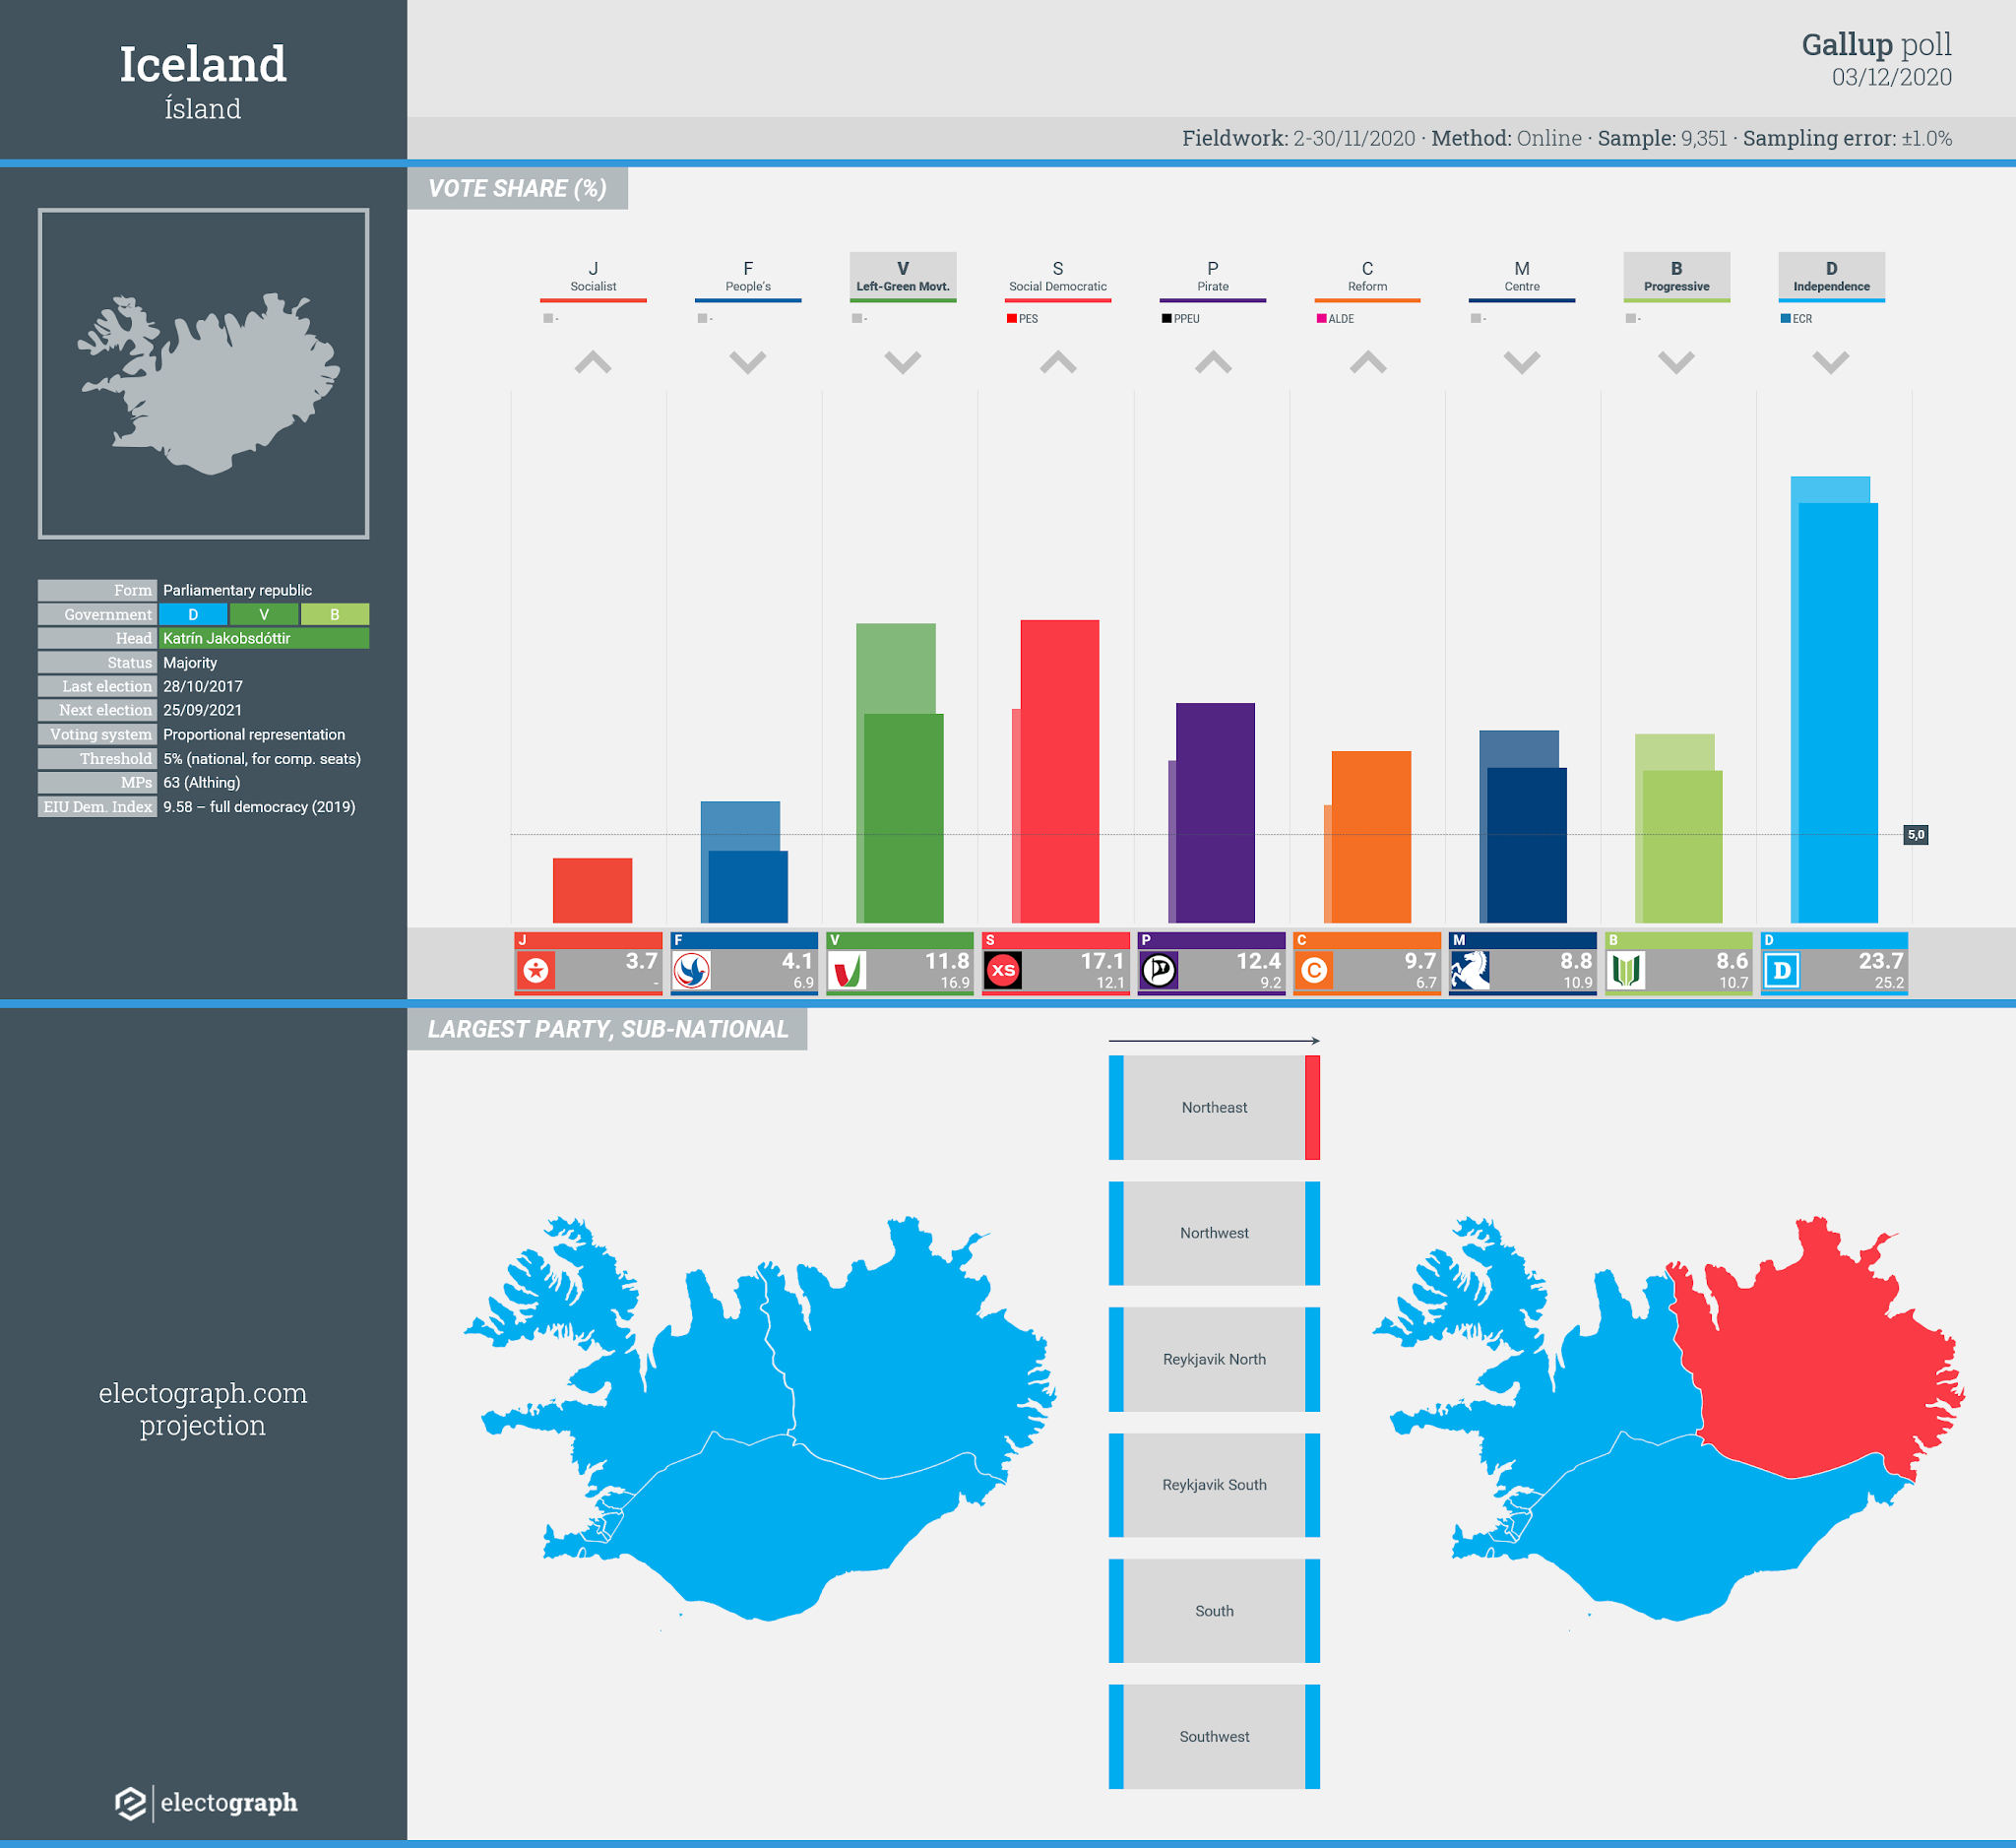 ICELAND: Gallup poll chart, 3 December 2020